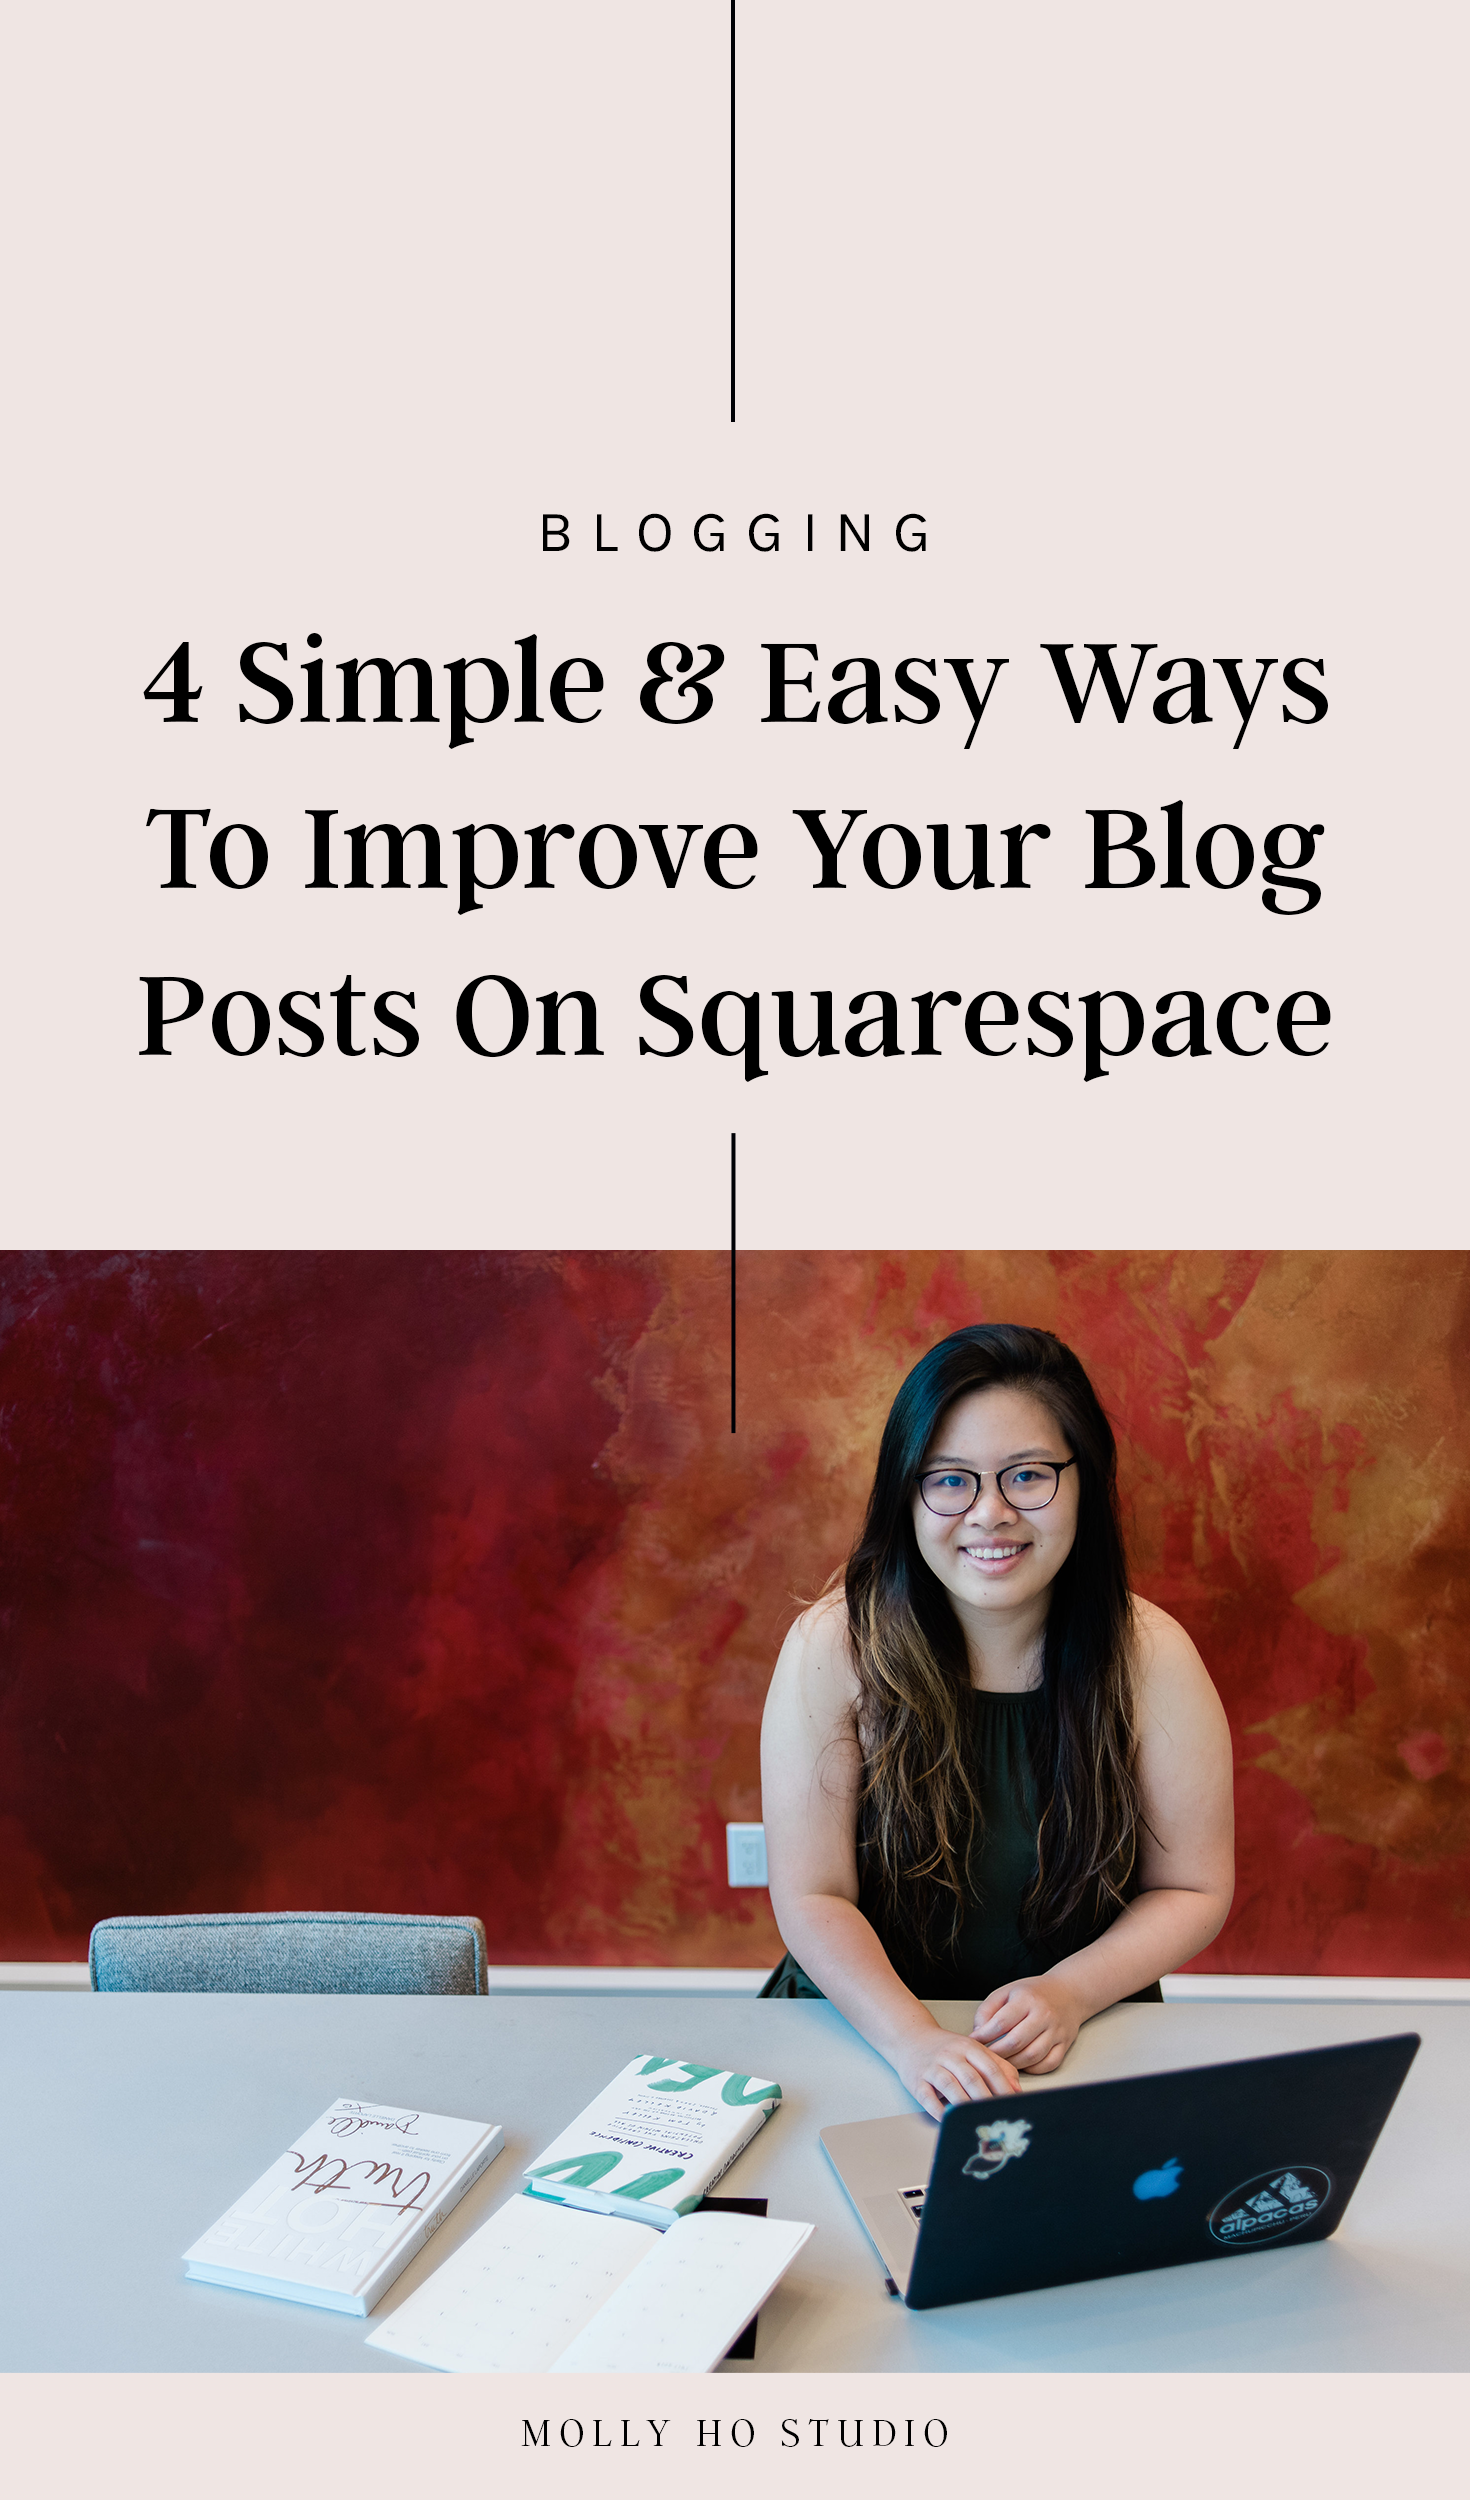 4 Simple And Easy Ways To Improve Your Blog Posts On Squarespace | How To Grow Your Business Blog |How To Structure A Blog Post | How To Write A Great Blog Post | Blogging Tips For Creative Entrepreneurs and Personal Brands | How To Format Your Blog Posts | Squarespace Blog Tips | Is Squarespace Good For Blogging | Improve Your Blog Traffic | Molly Ho Studio